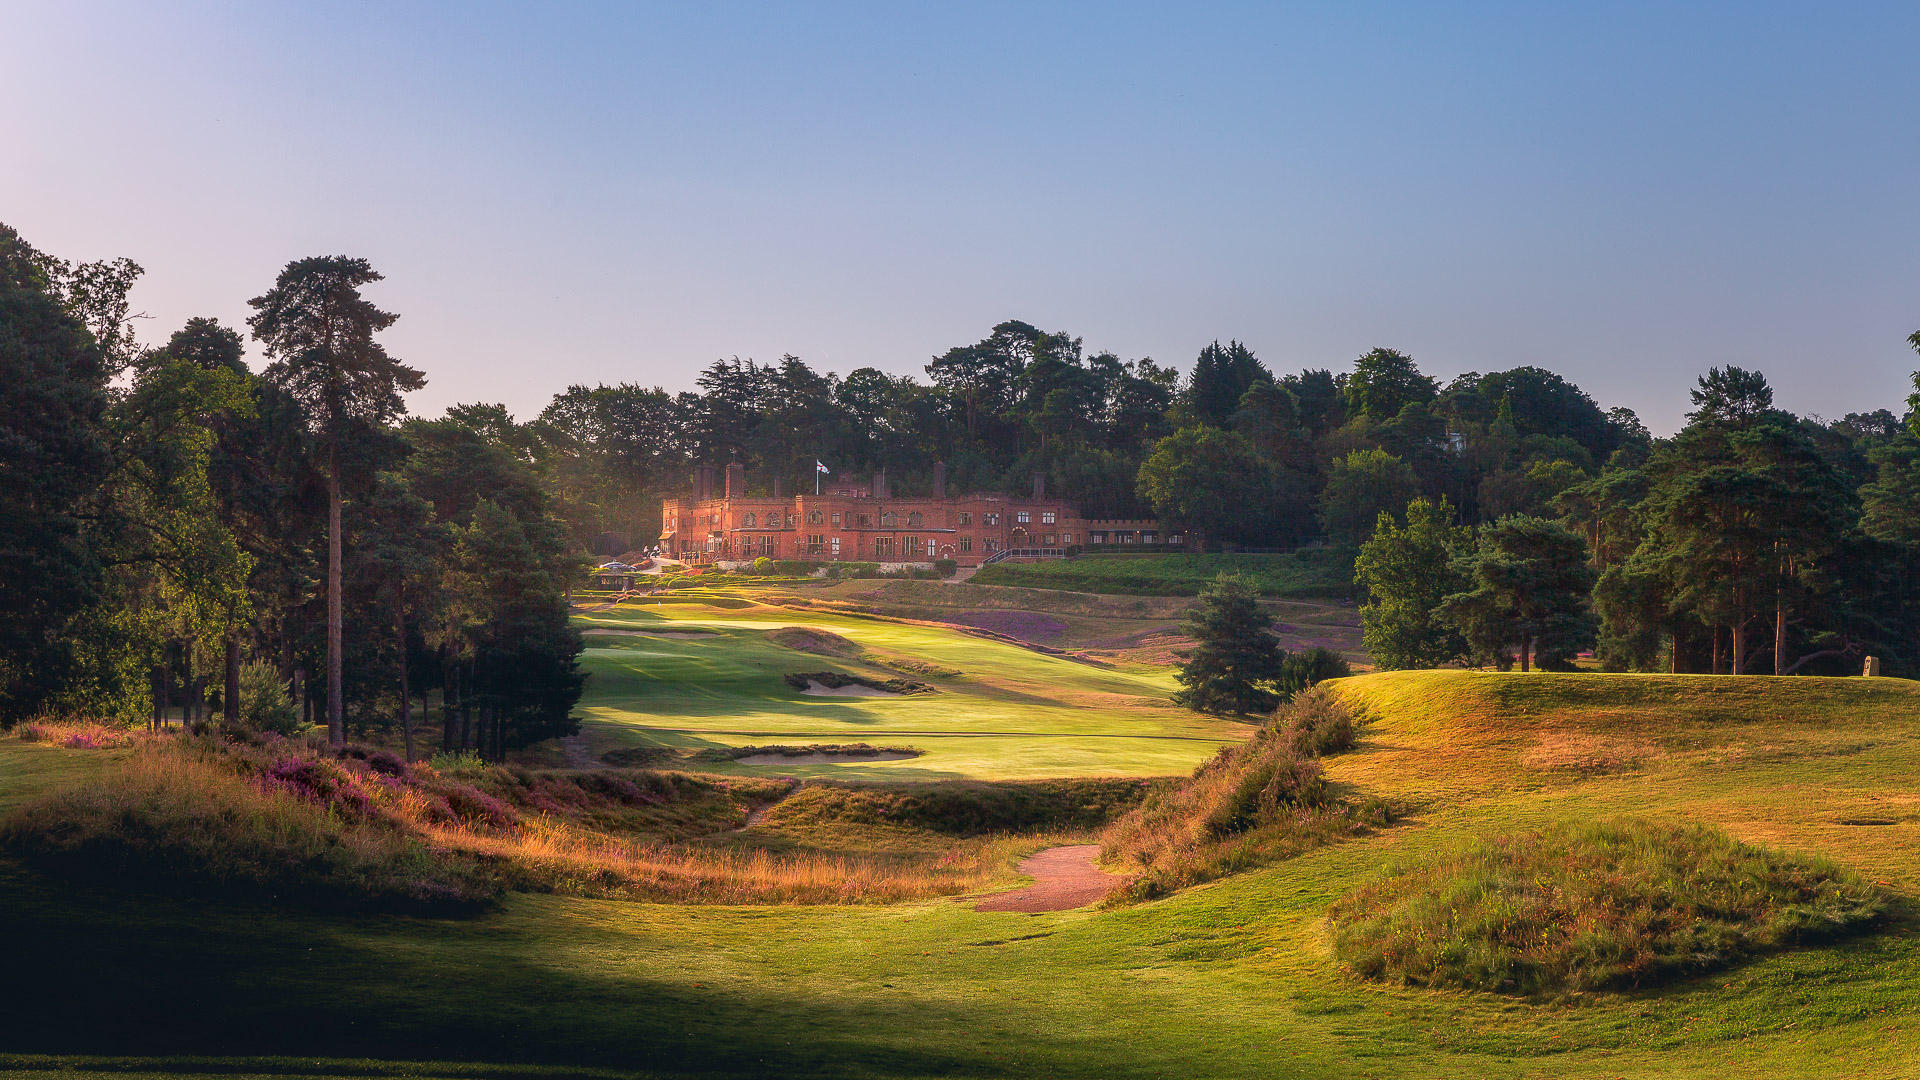 09th-Hole-St-Georges-Hill-Golf-Club-2607-Edit-2